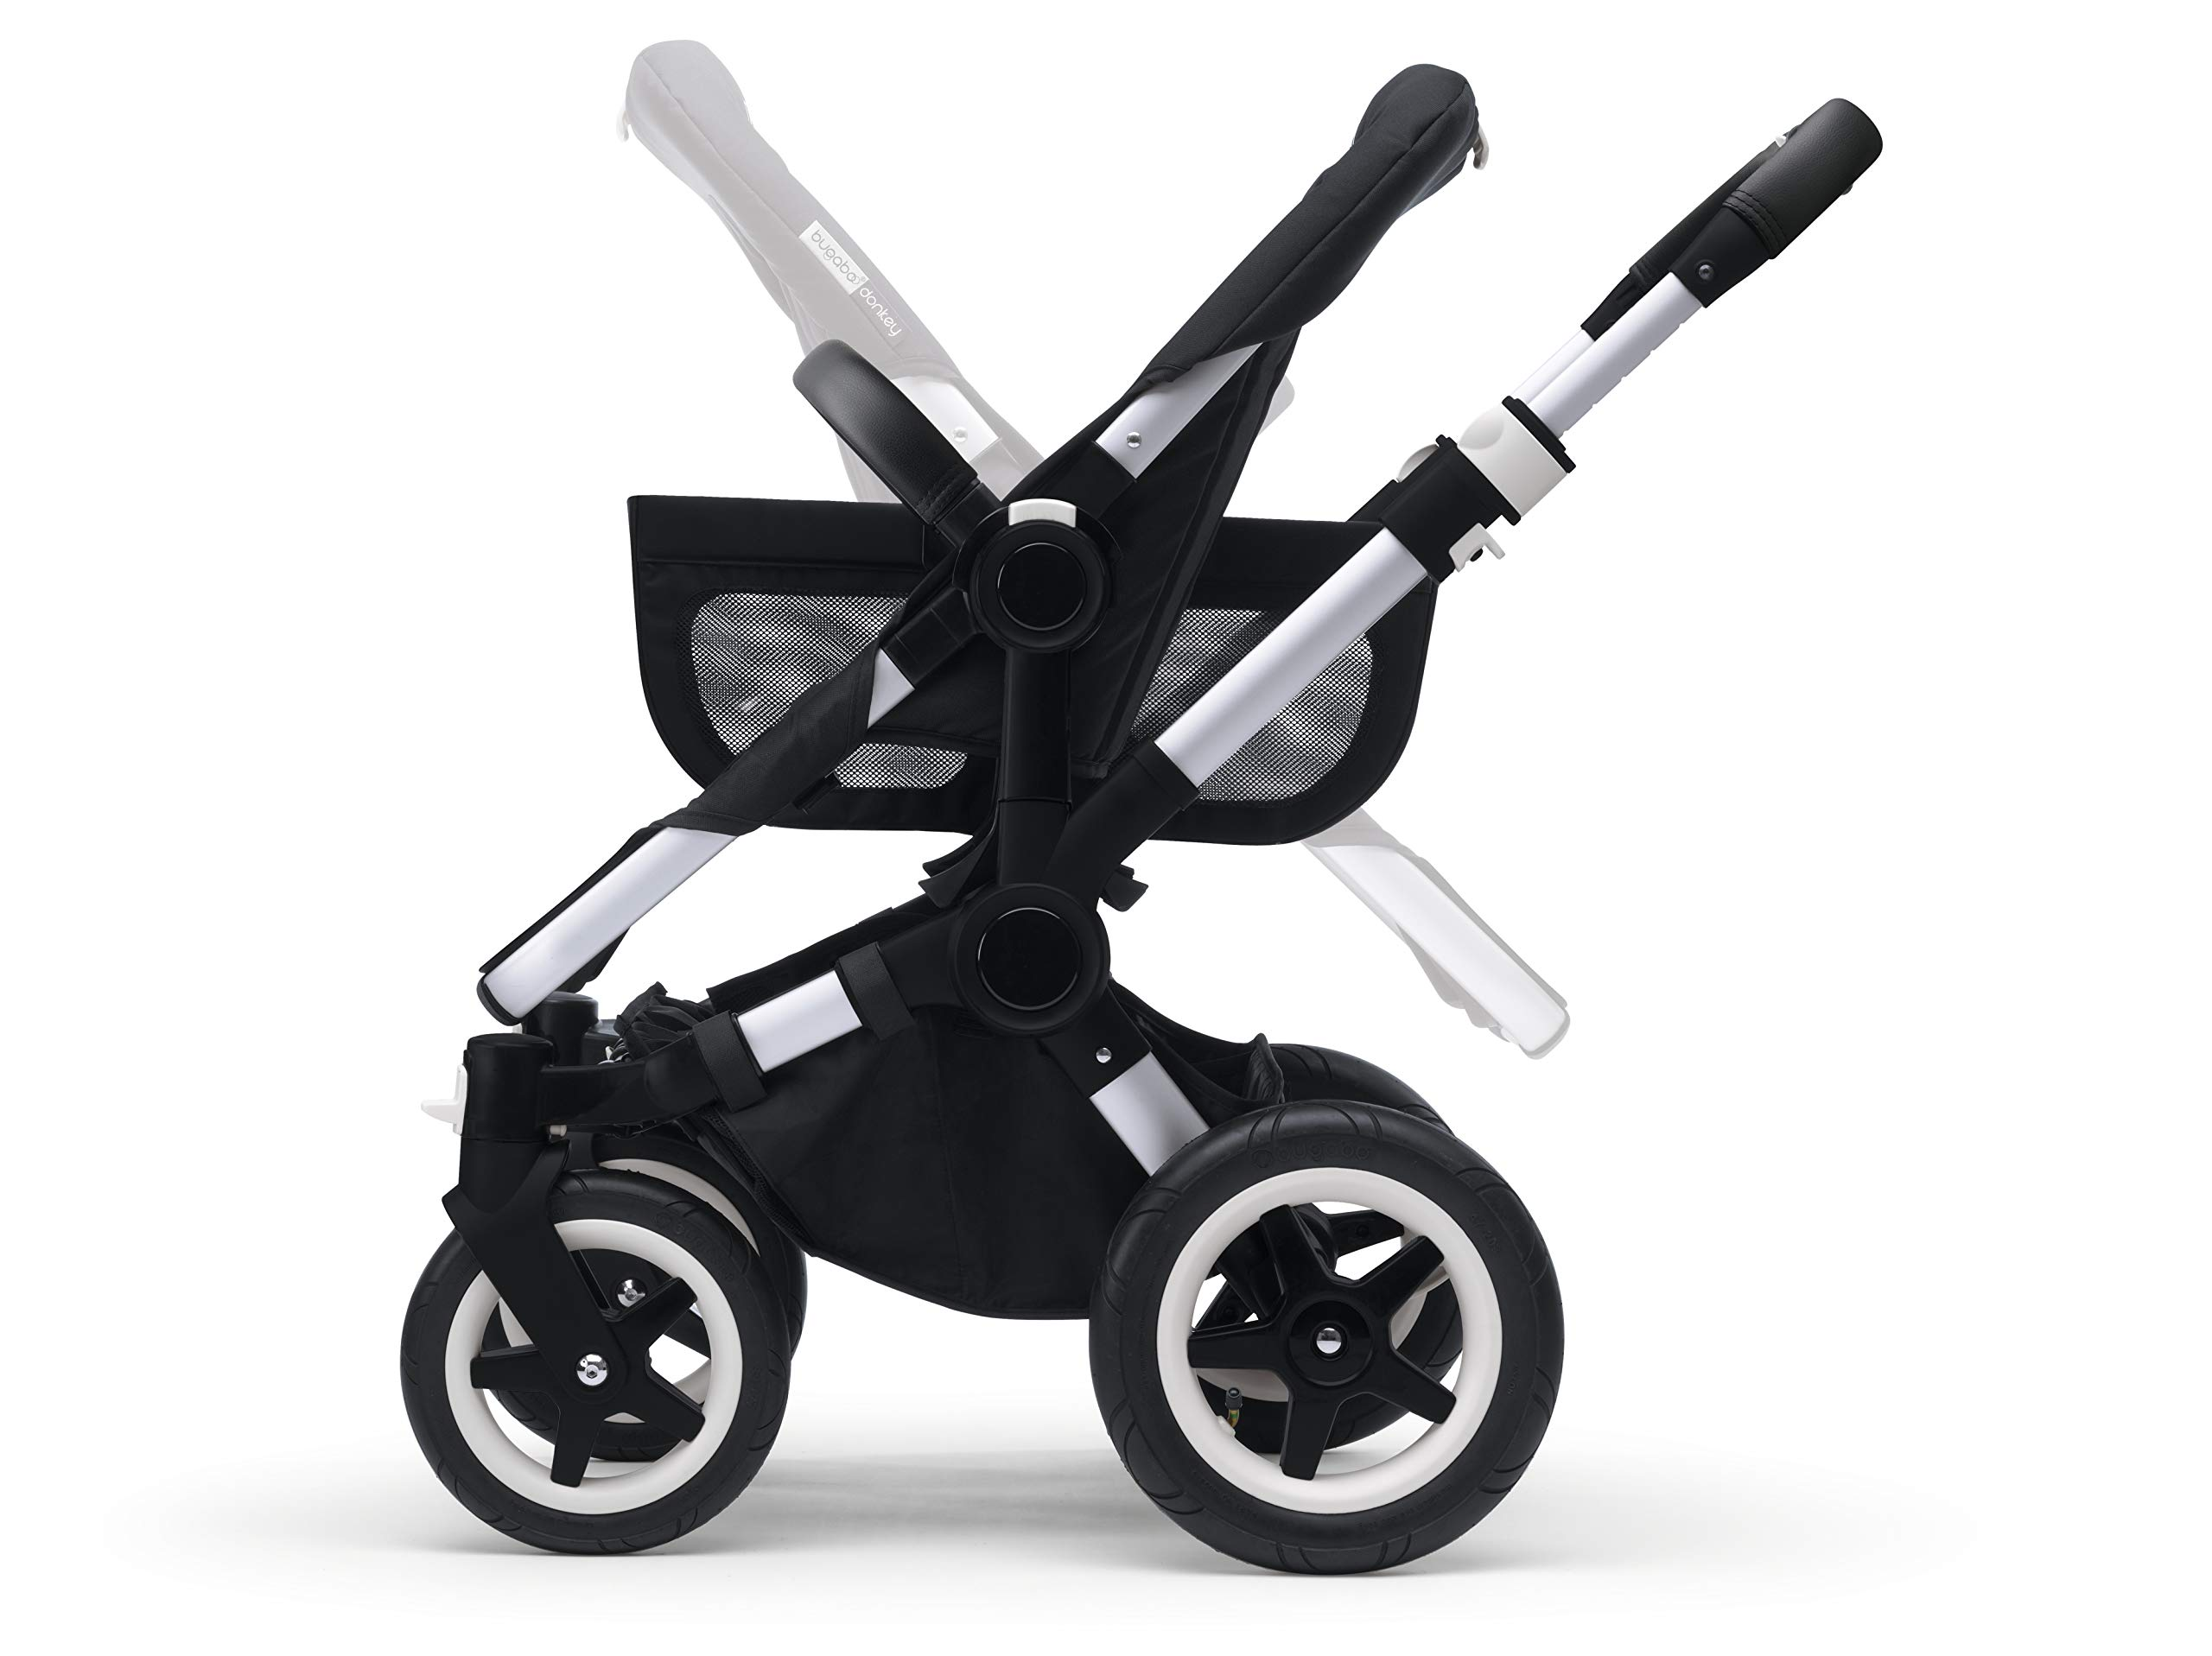 Bugaboo Donkey 2 Duo, 2 in 1 Pram and Double Pushchair for Baby and Toddler, Black Bugaboo Perfect for two children of different ages Use as a double pushchair or convert it back into a single (mono) in a few simple clicks You only need one hand to push, steer and turn 4